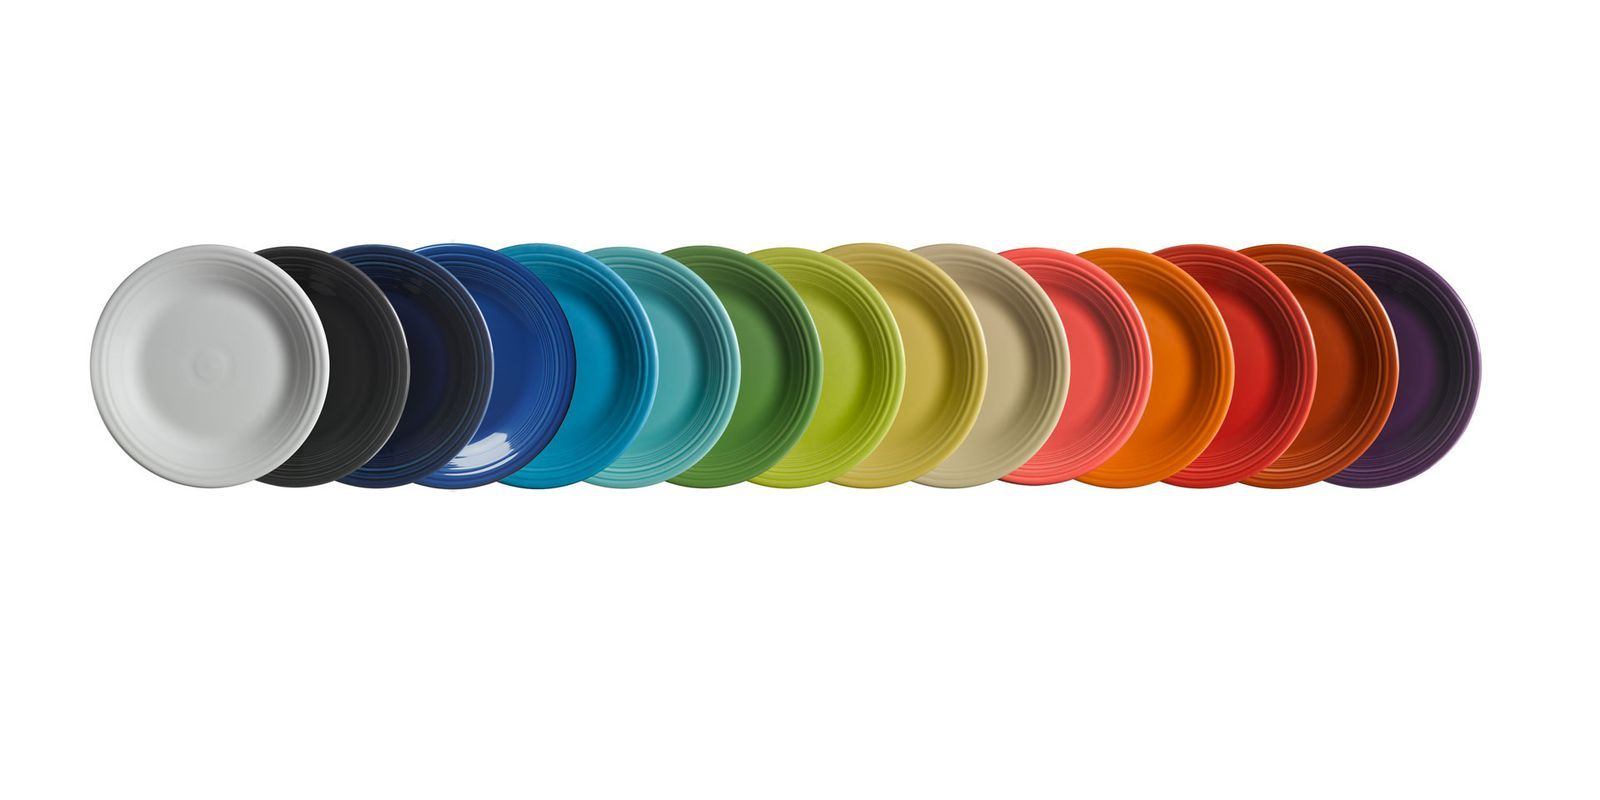 fiesta dinner plates  sc 1 st  Good Housekeeping & Colorful Kitchen Products - Colorful Product Lines